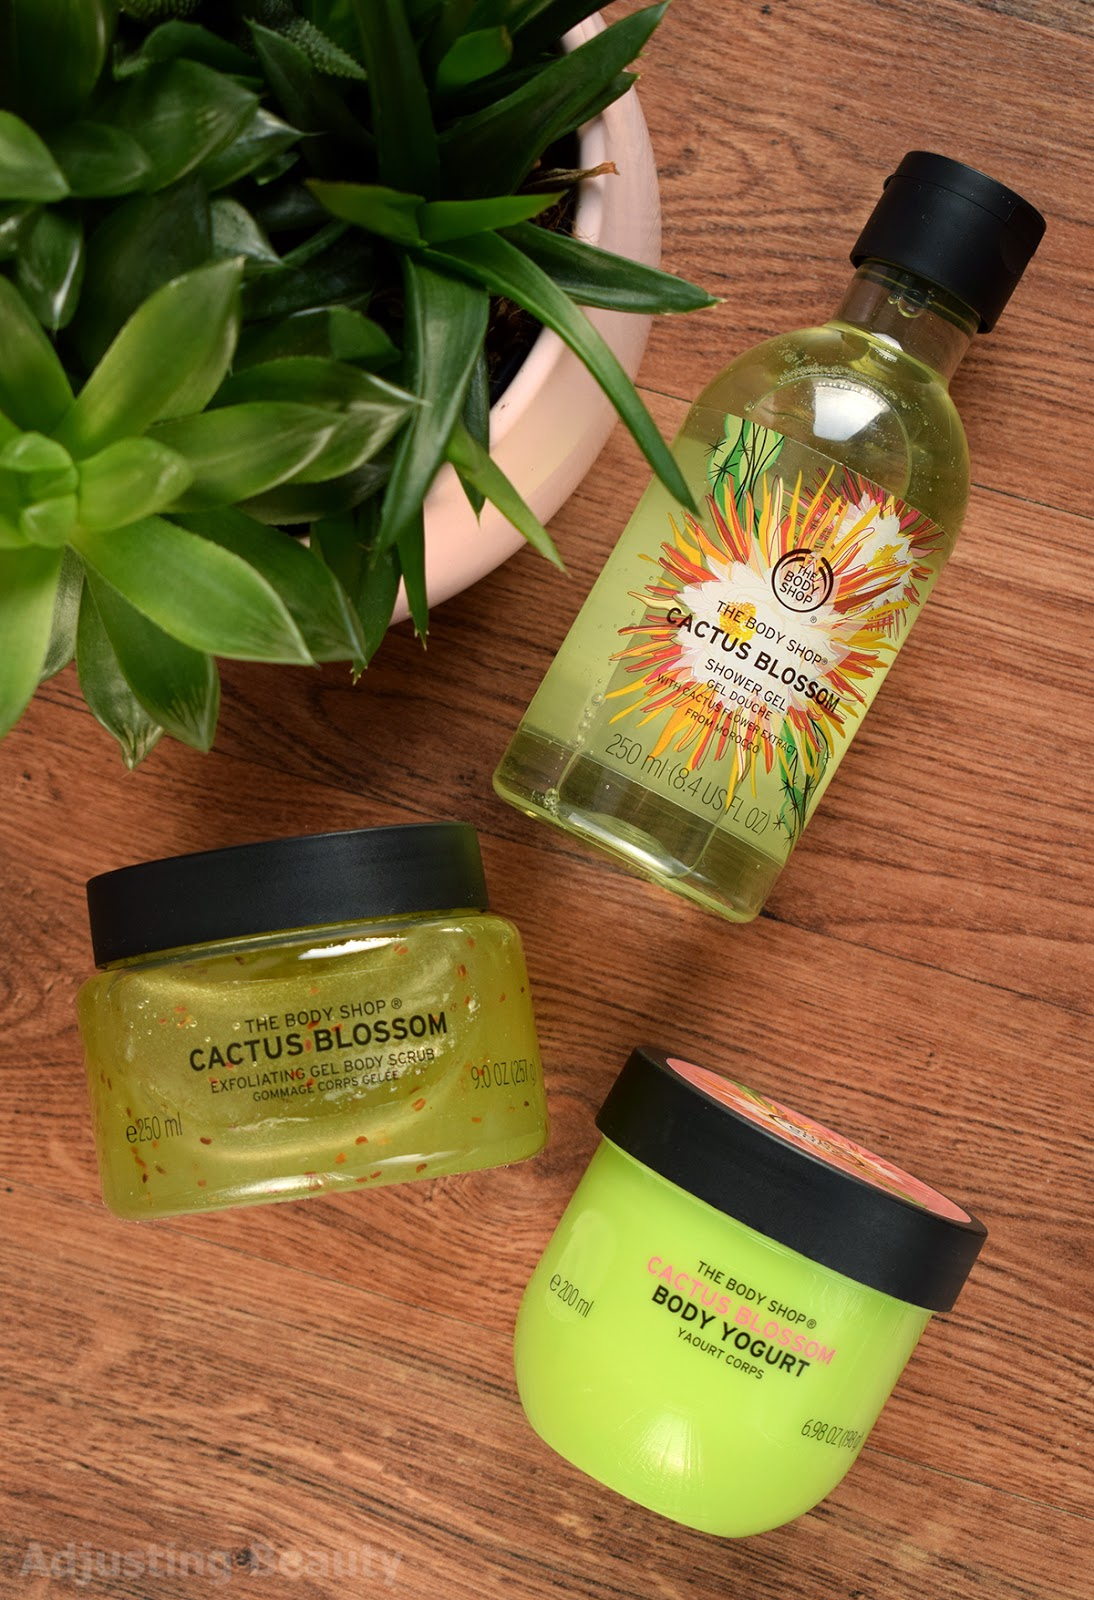 Review: The Body Shop LE Cactus Blossom - Shower Gel